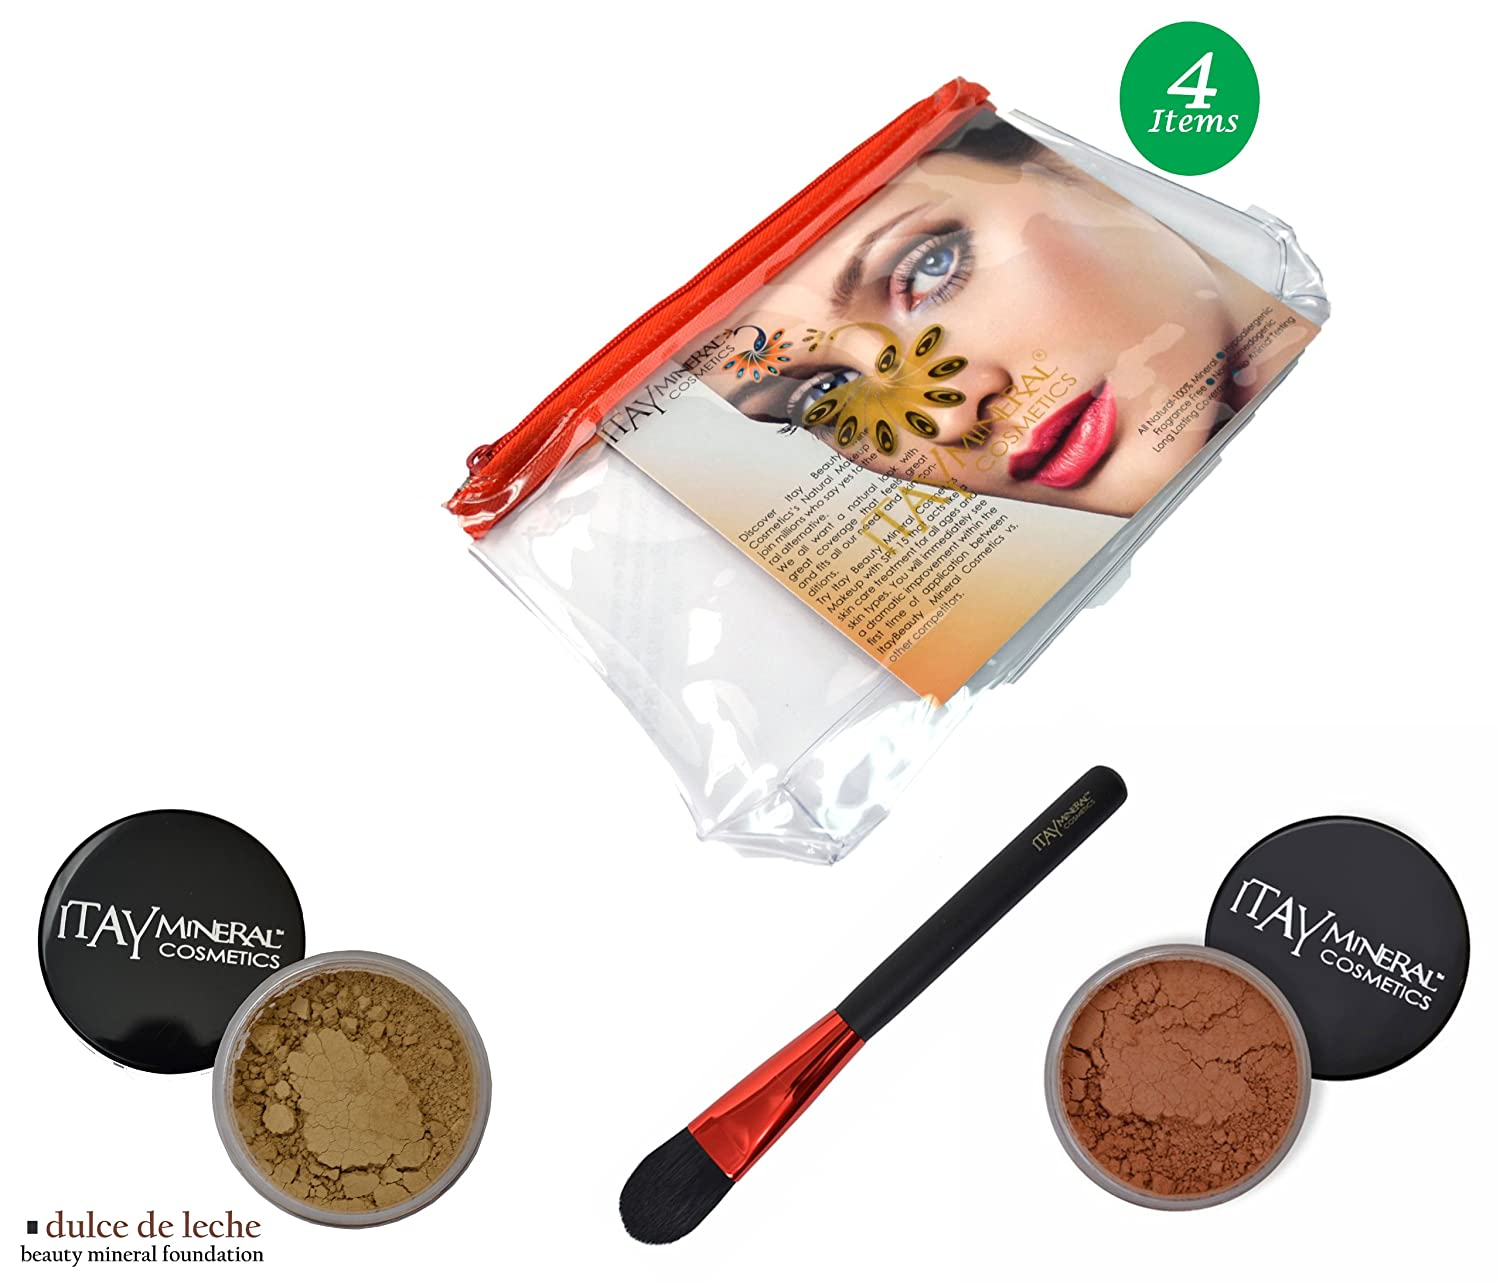 (Bundle of 4 Items) Itay Mineral Cosmetics Full Size Flawless Foundation MF5 Dulce de Leche+Blush+Foundation Brush+Airplane Travel Cosmetic Bag (MB1 Harvest Eye) 81G3-n2ssyL